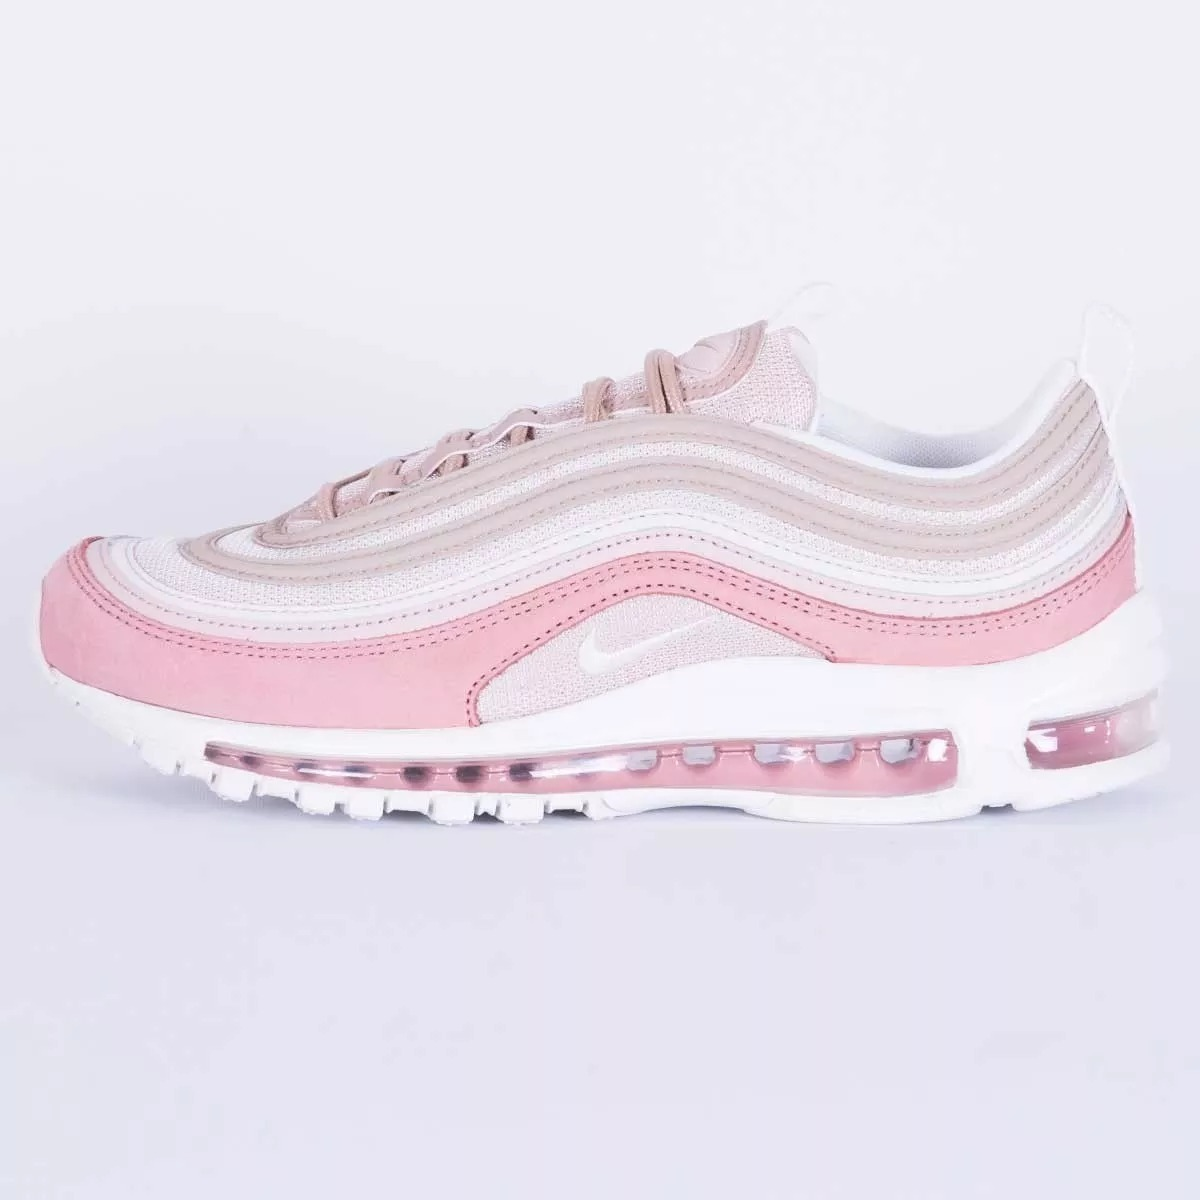 the latest 320dd 73ded Nike Air Max 97 Original Lançamento